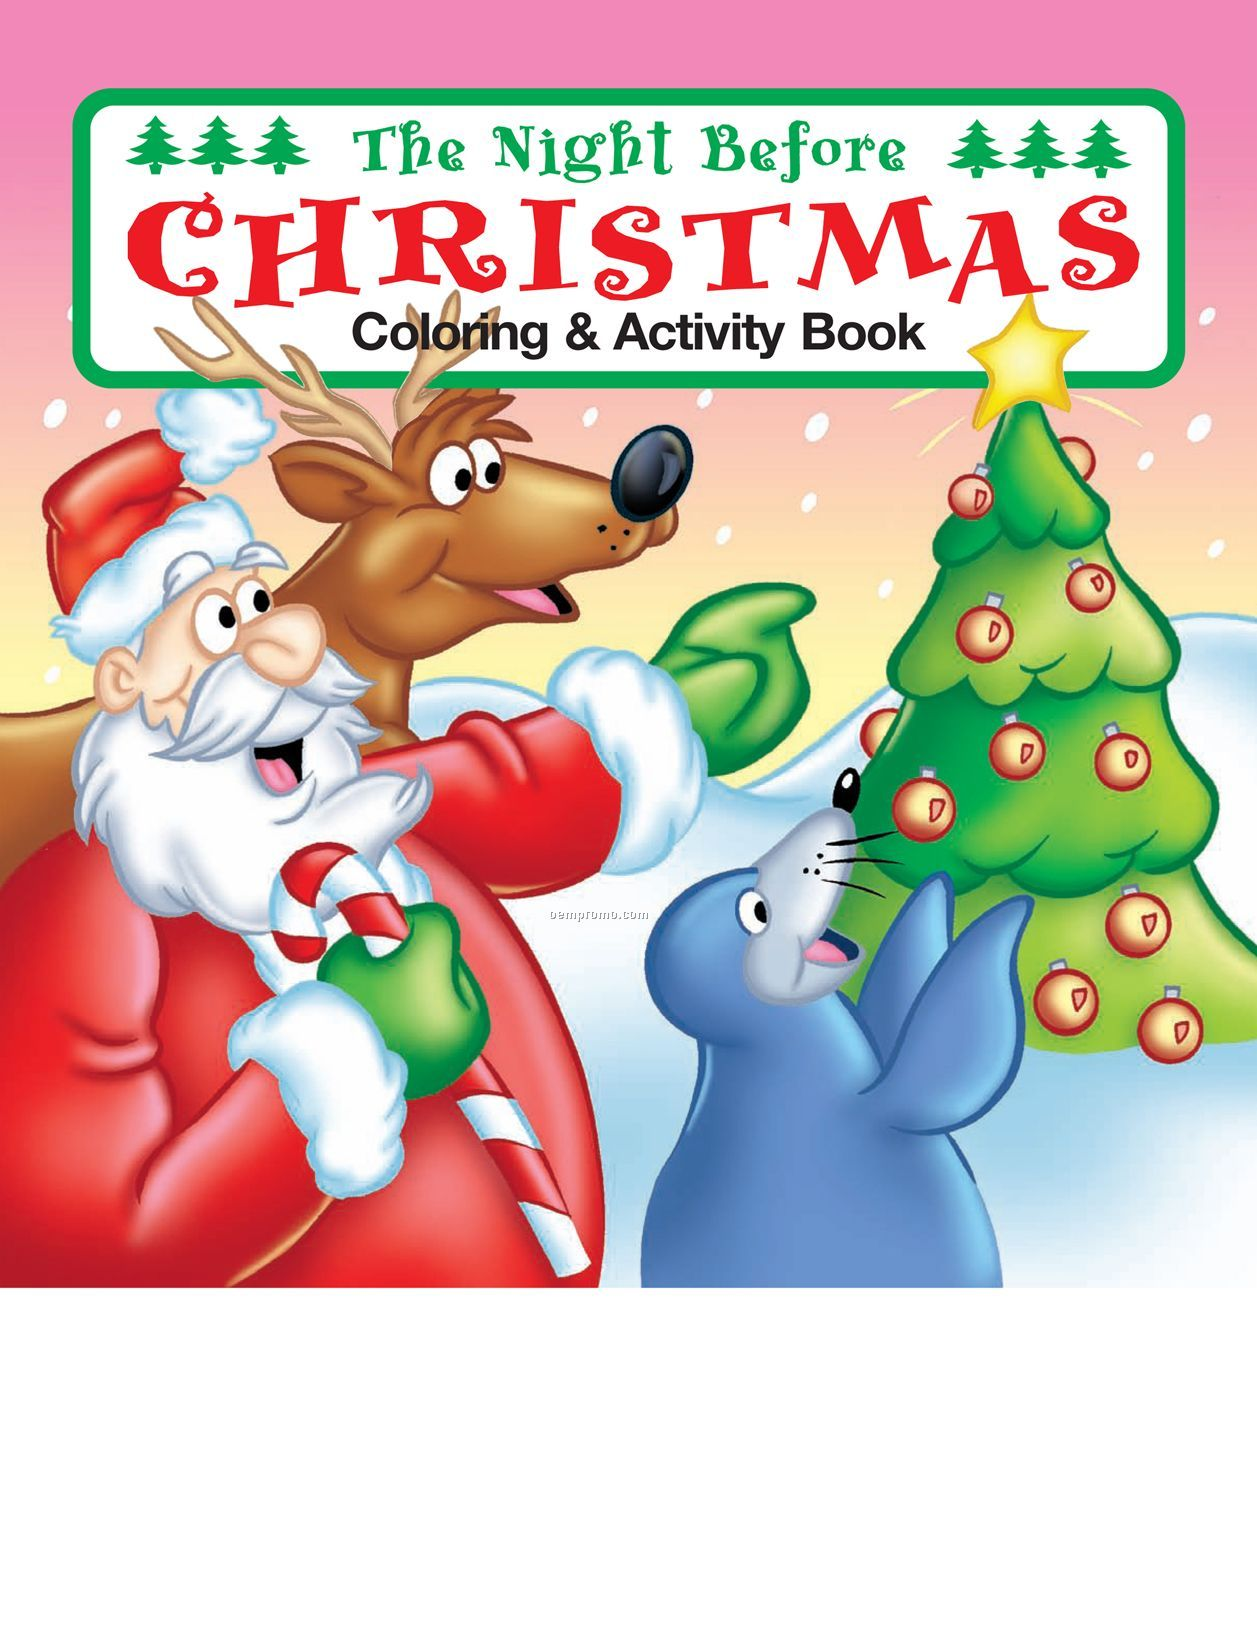 The Night Before Christmas Coloring Book Fun Pack